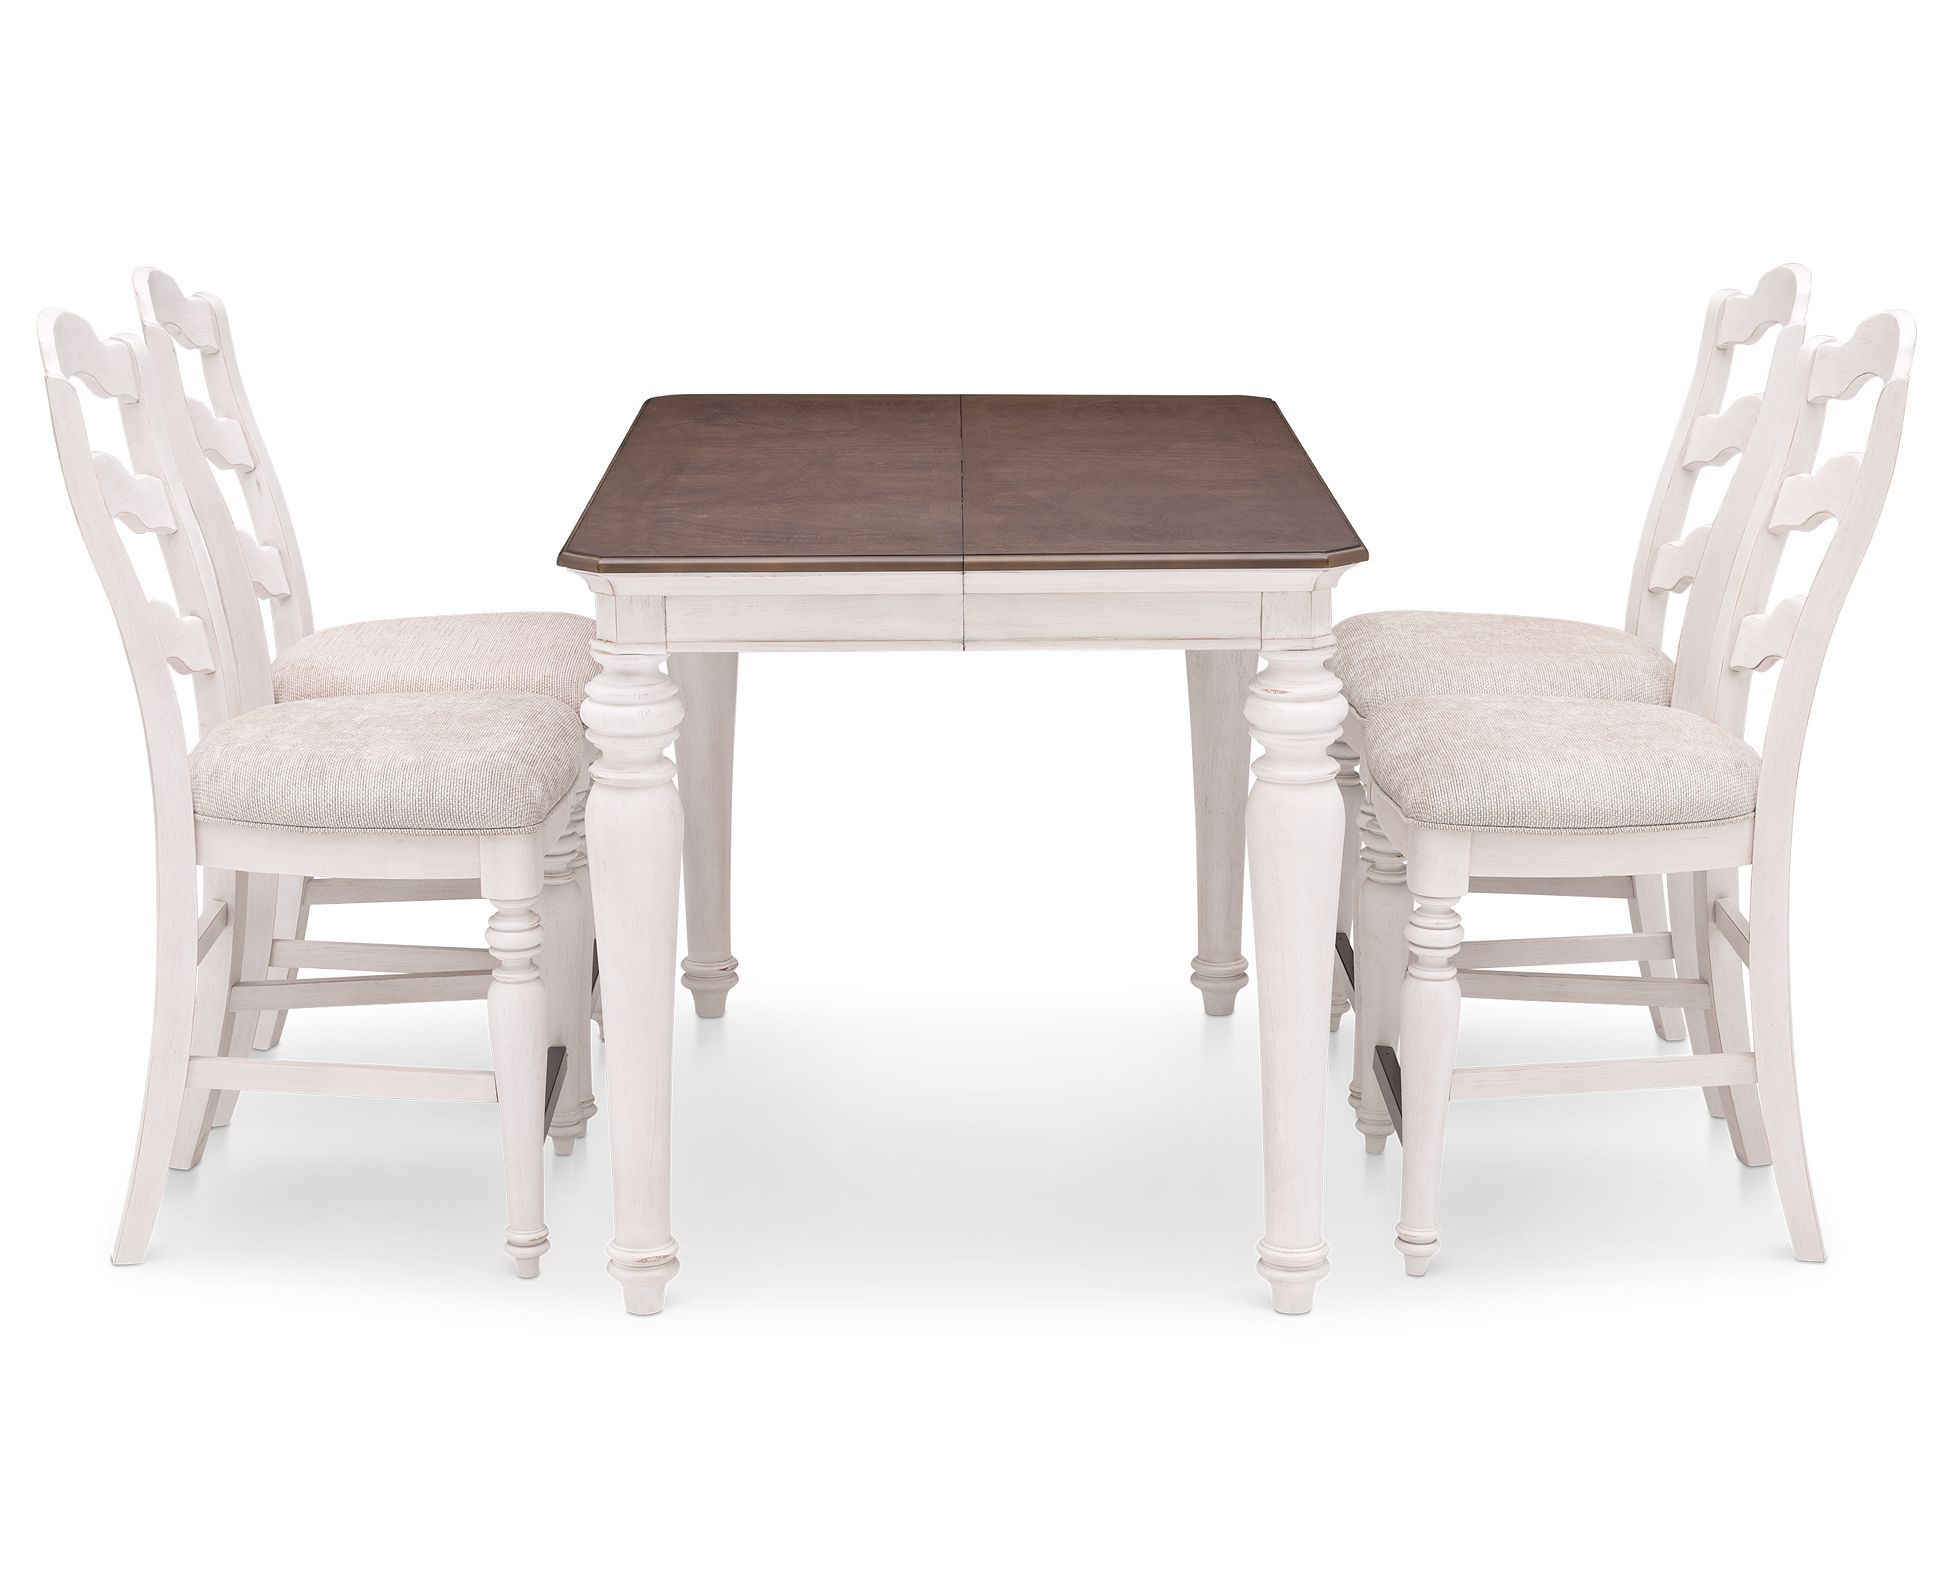 Cottage Lane Counter Height Dining Set Has Countryside Class In Rustic White Finish With Soft Brown Table To Pub Table Sets Counter Height Table Rowe Furniture